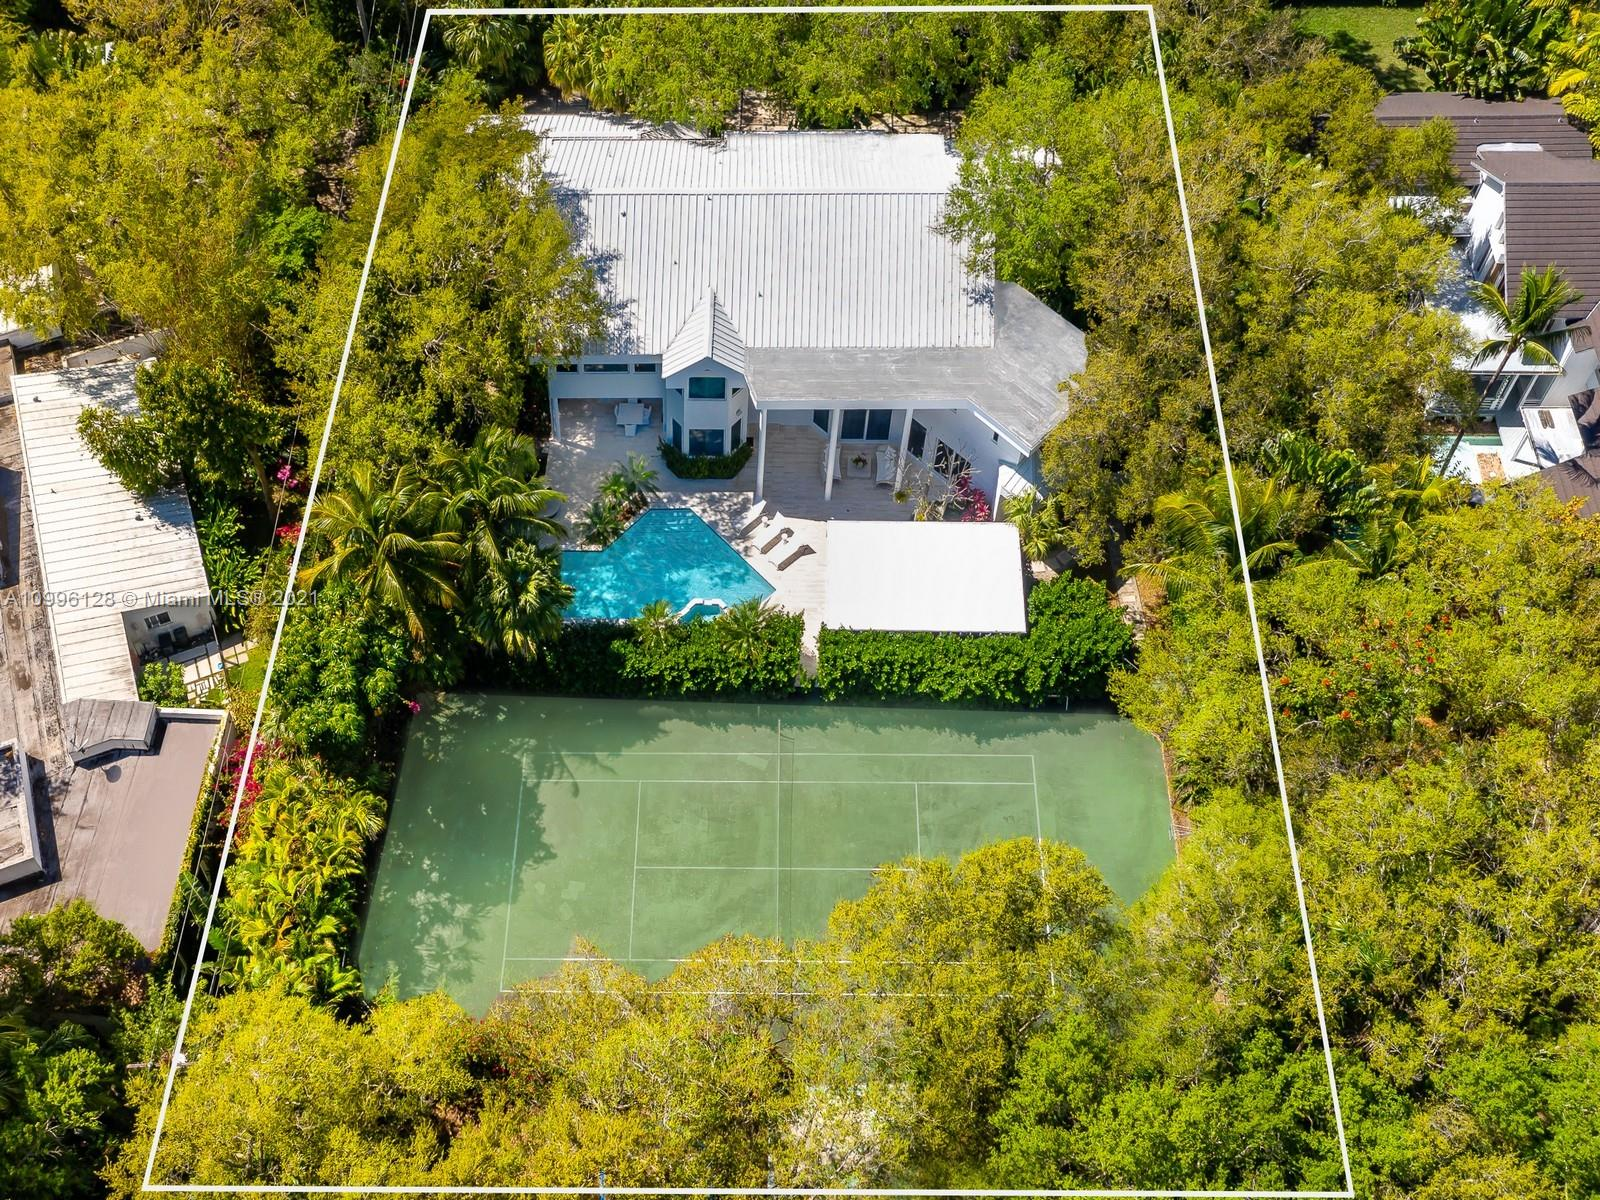 This MODERN Gem sits on nearly on a 38,161SF LOT nestled in a quiet enclave in CORAL GABLES.Take advantage of this unique opportunity to own a completely updated home featuring a tennis/basketball Ct,summer kitchen,pool+expansive garden made for entertaining.This beautiful home features 6 Bds,7 bths inside of its 7,090 SF Total,w flr to ceiling windows which provide ample light throughout the house.On the 1st floor offers formal living+dinning room,completely updated kitchen w top of the line wolf appliances+built in Nespresso Machine,office,guest suite,family room.Upstairs offers master suite w oversized his+her closets,+3 adtl bedrooms.Equipped with tin roof,generator,2 car garage+2 carports,impact windows throughout,surround sound+security system,this gated home is a family's dream!